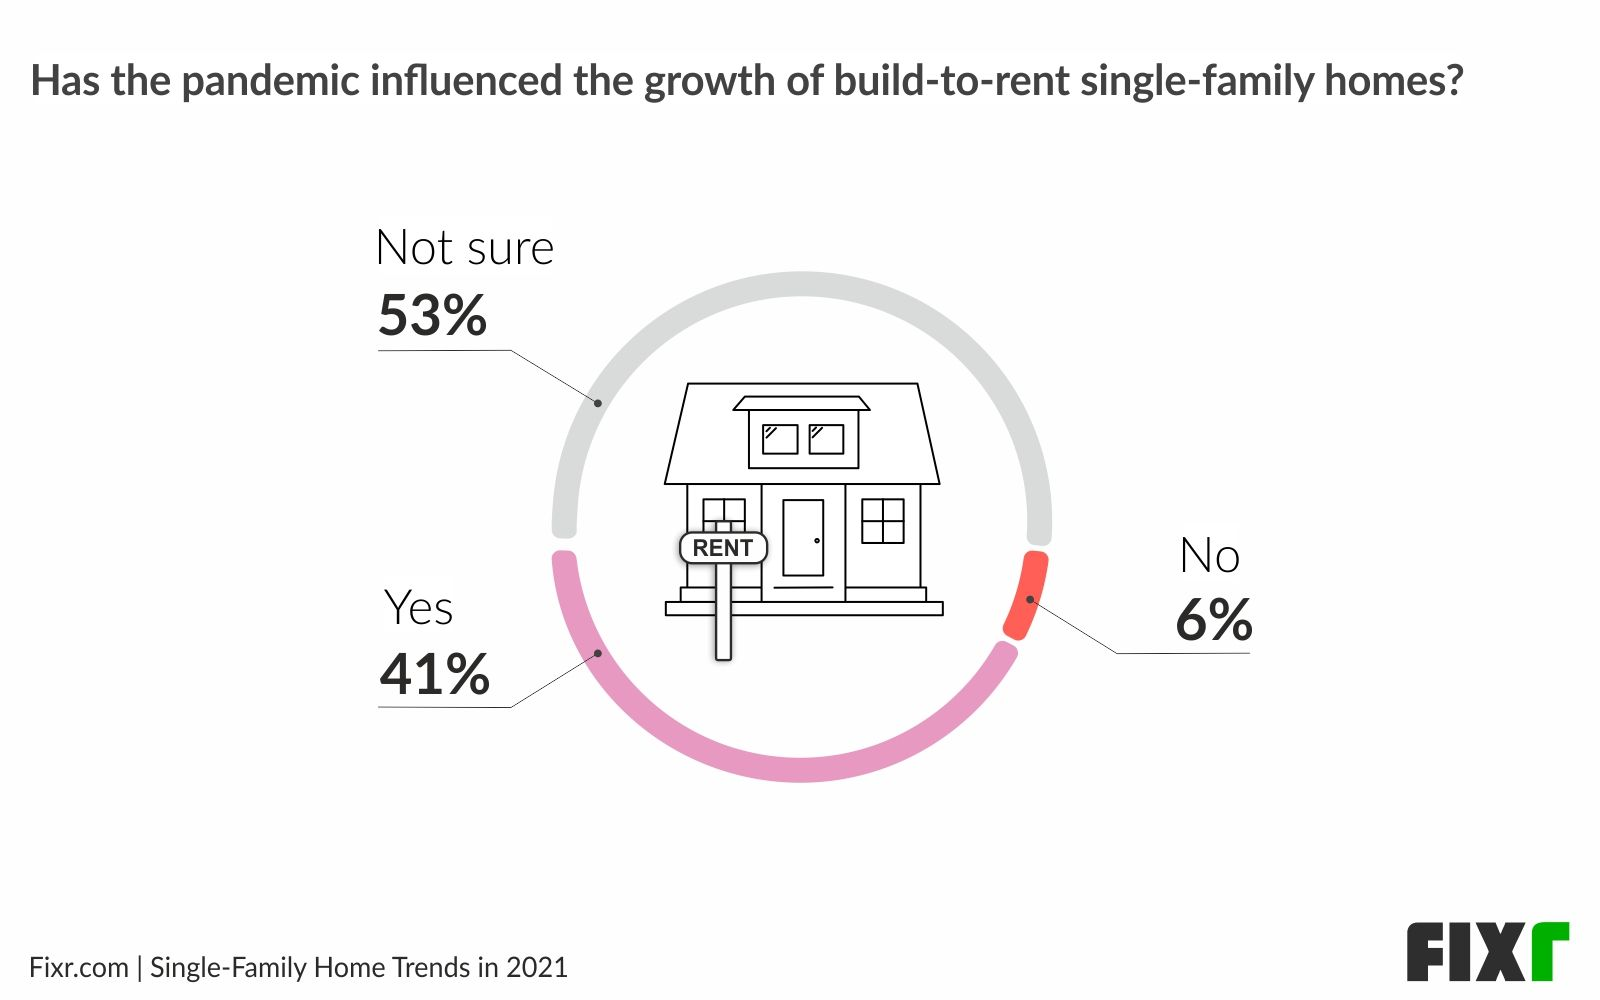 Pandemic influence on build-to-rent single-family homes